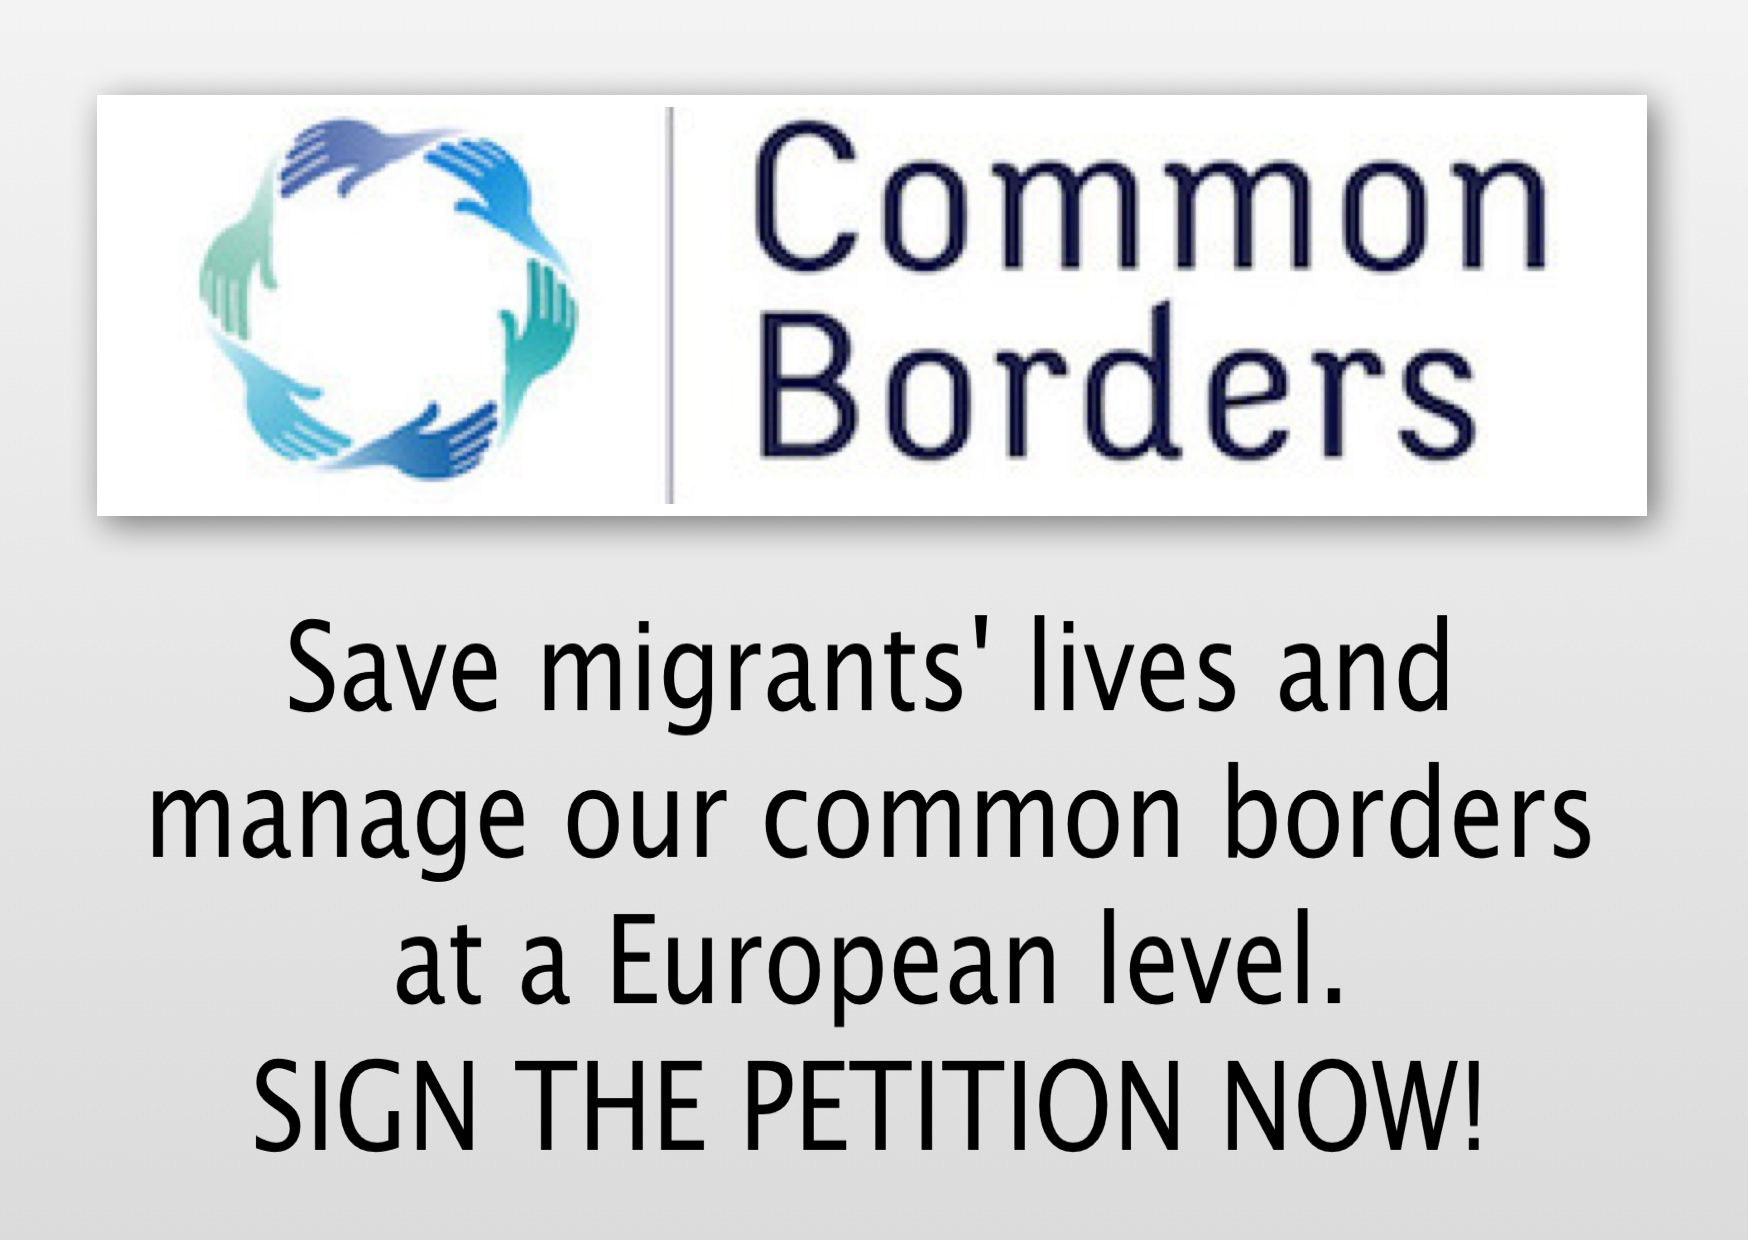 CommonBorders.eu - SIGN the Petition!